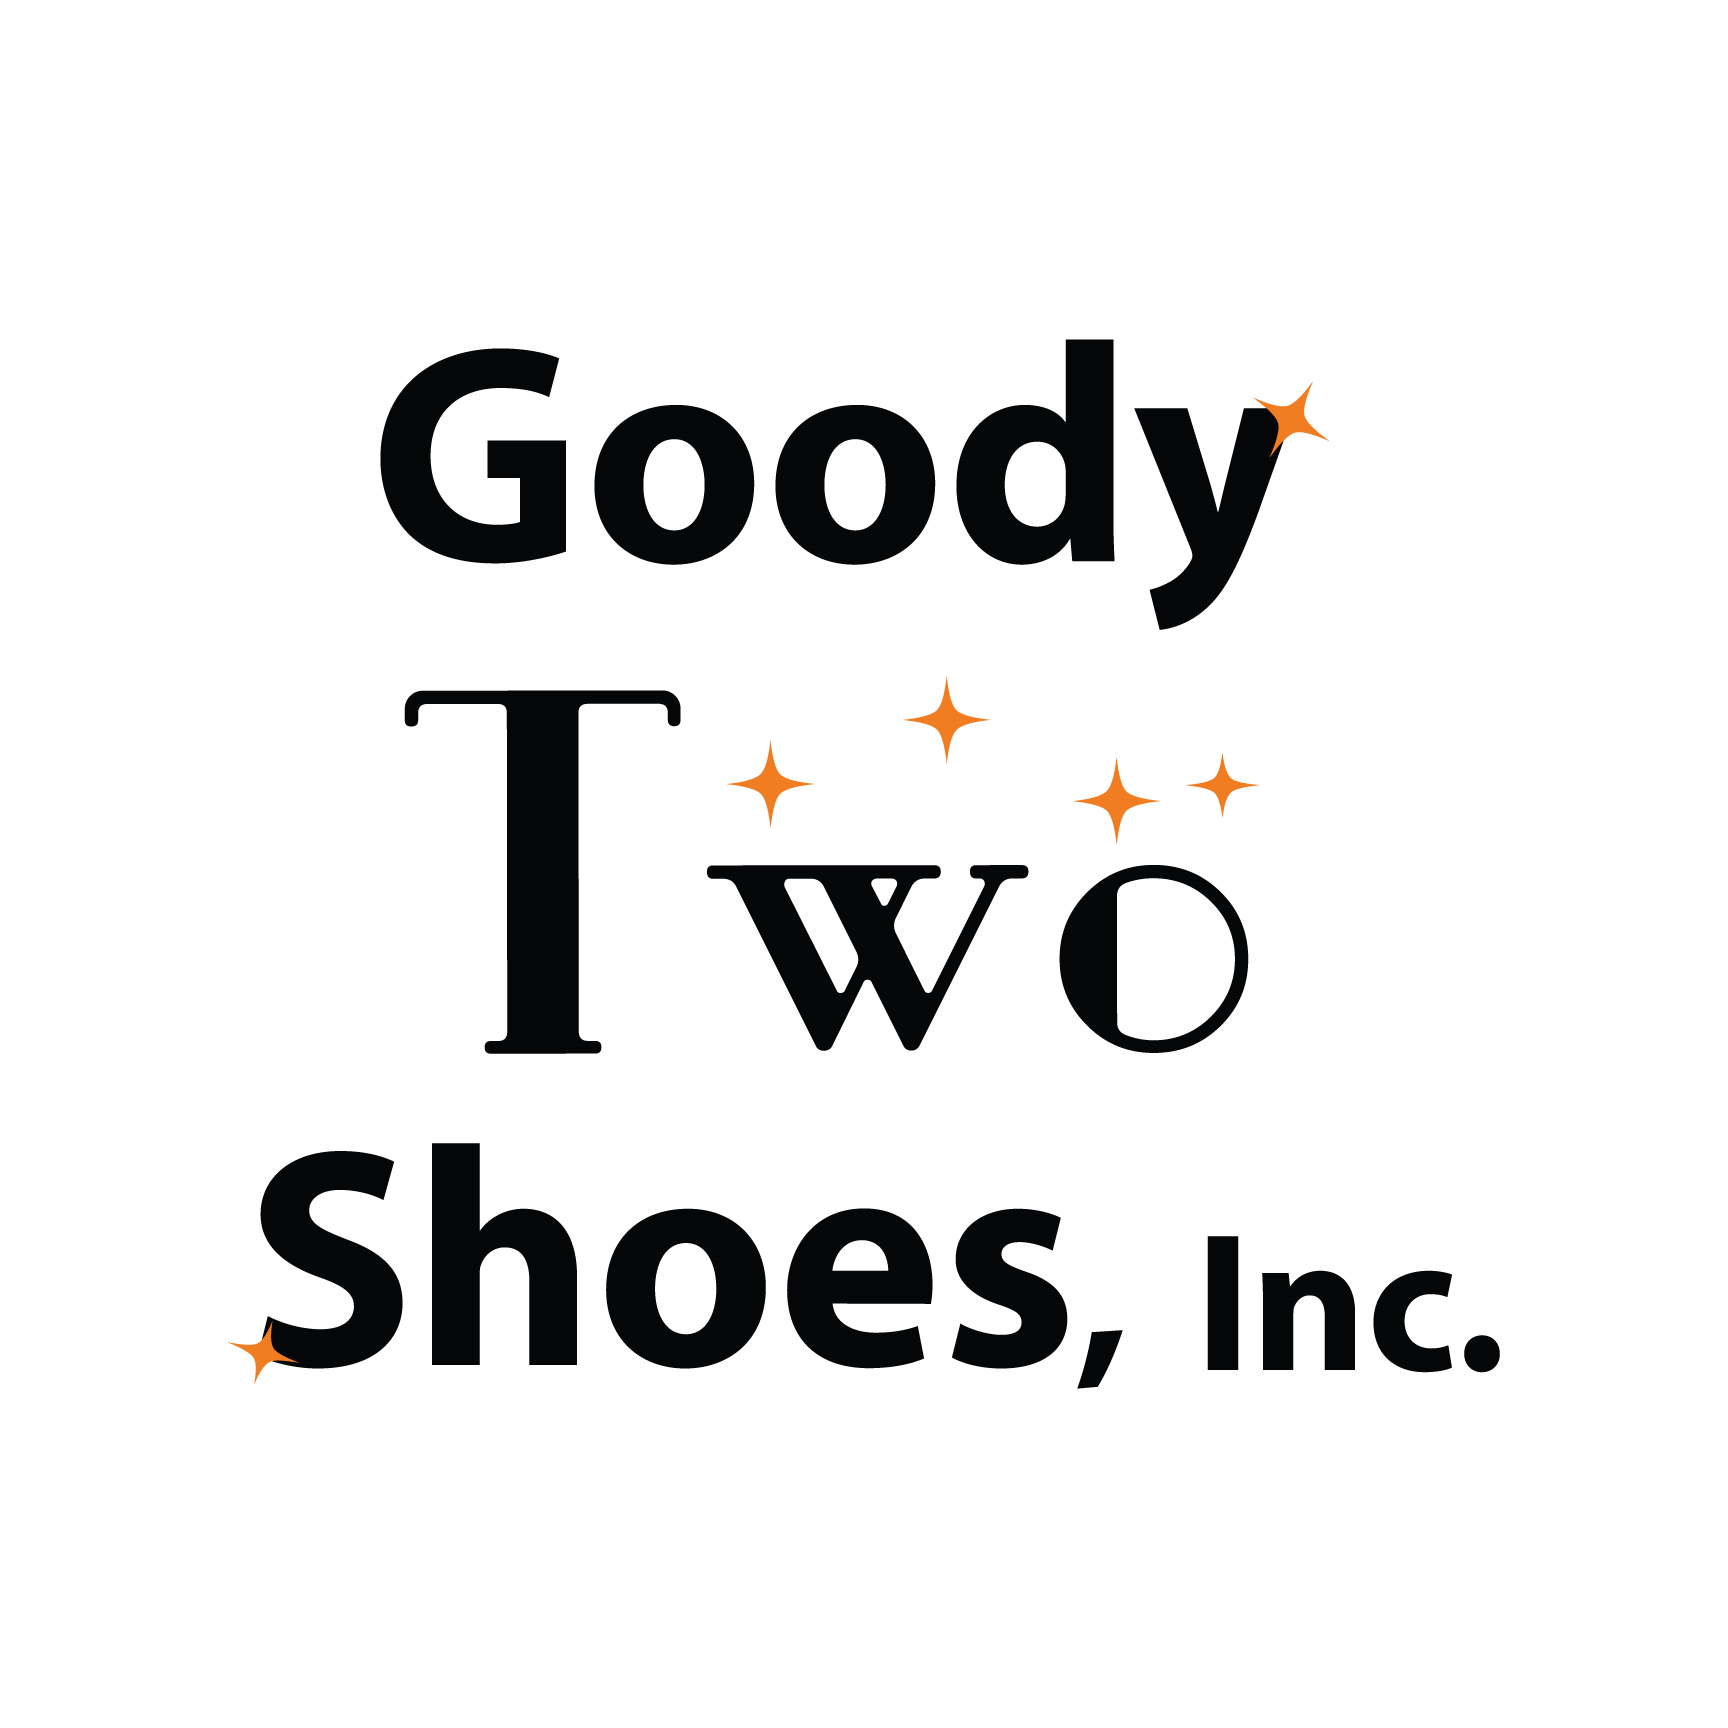 Goody Two Shoes, Inc